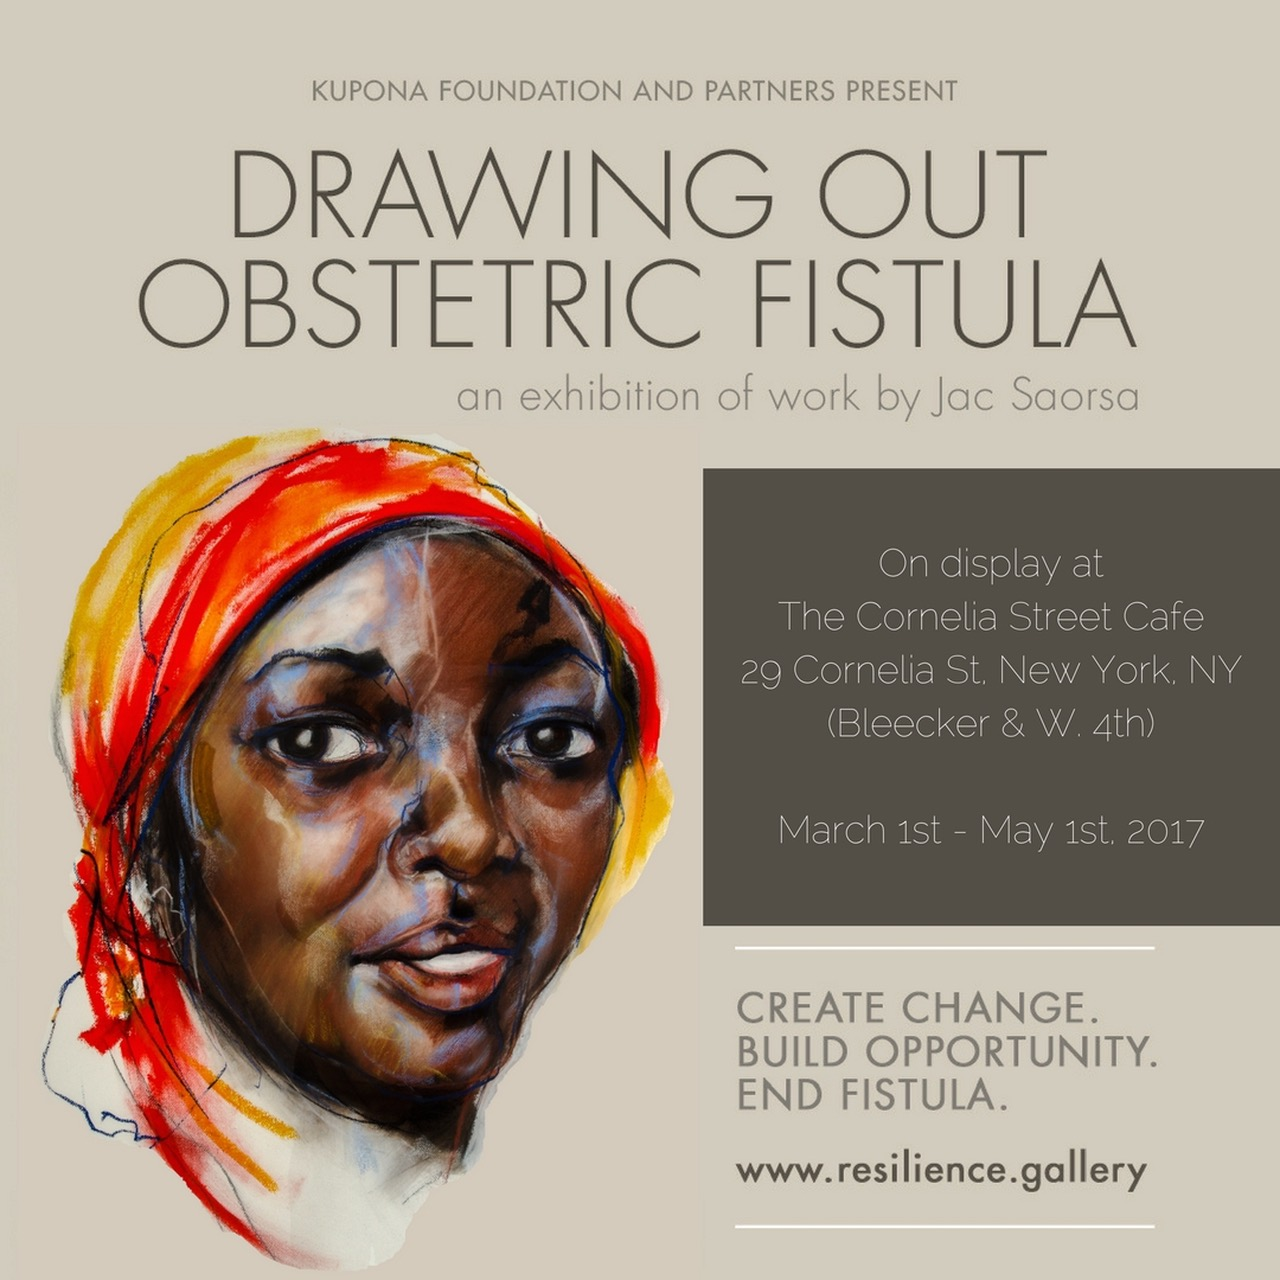 drawing out obstetric fistula